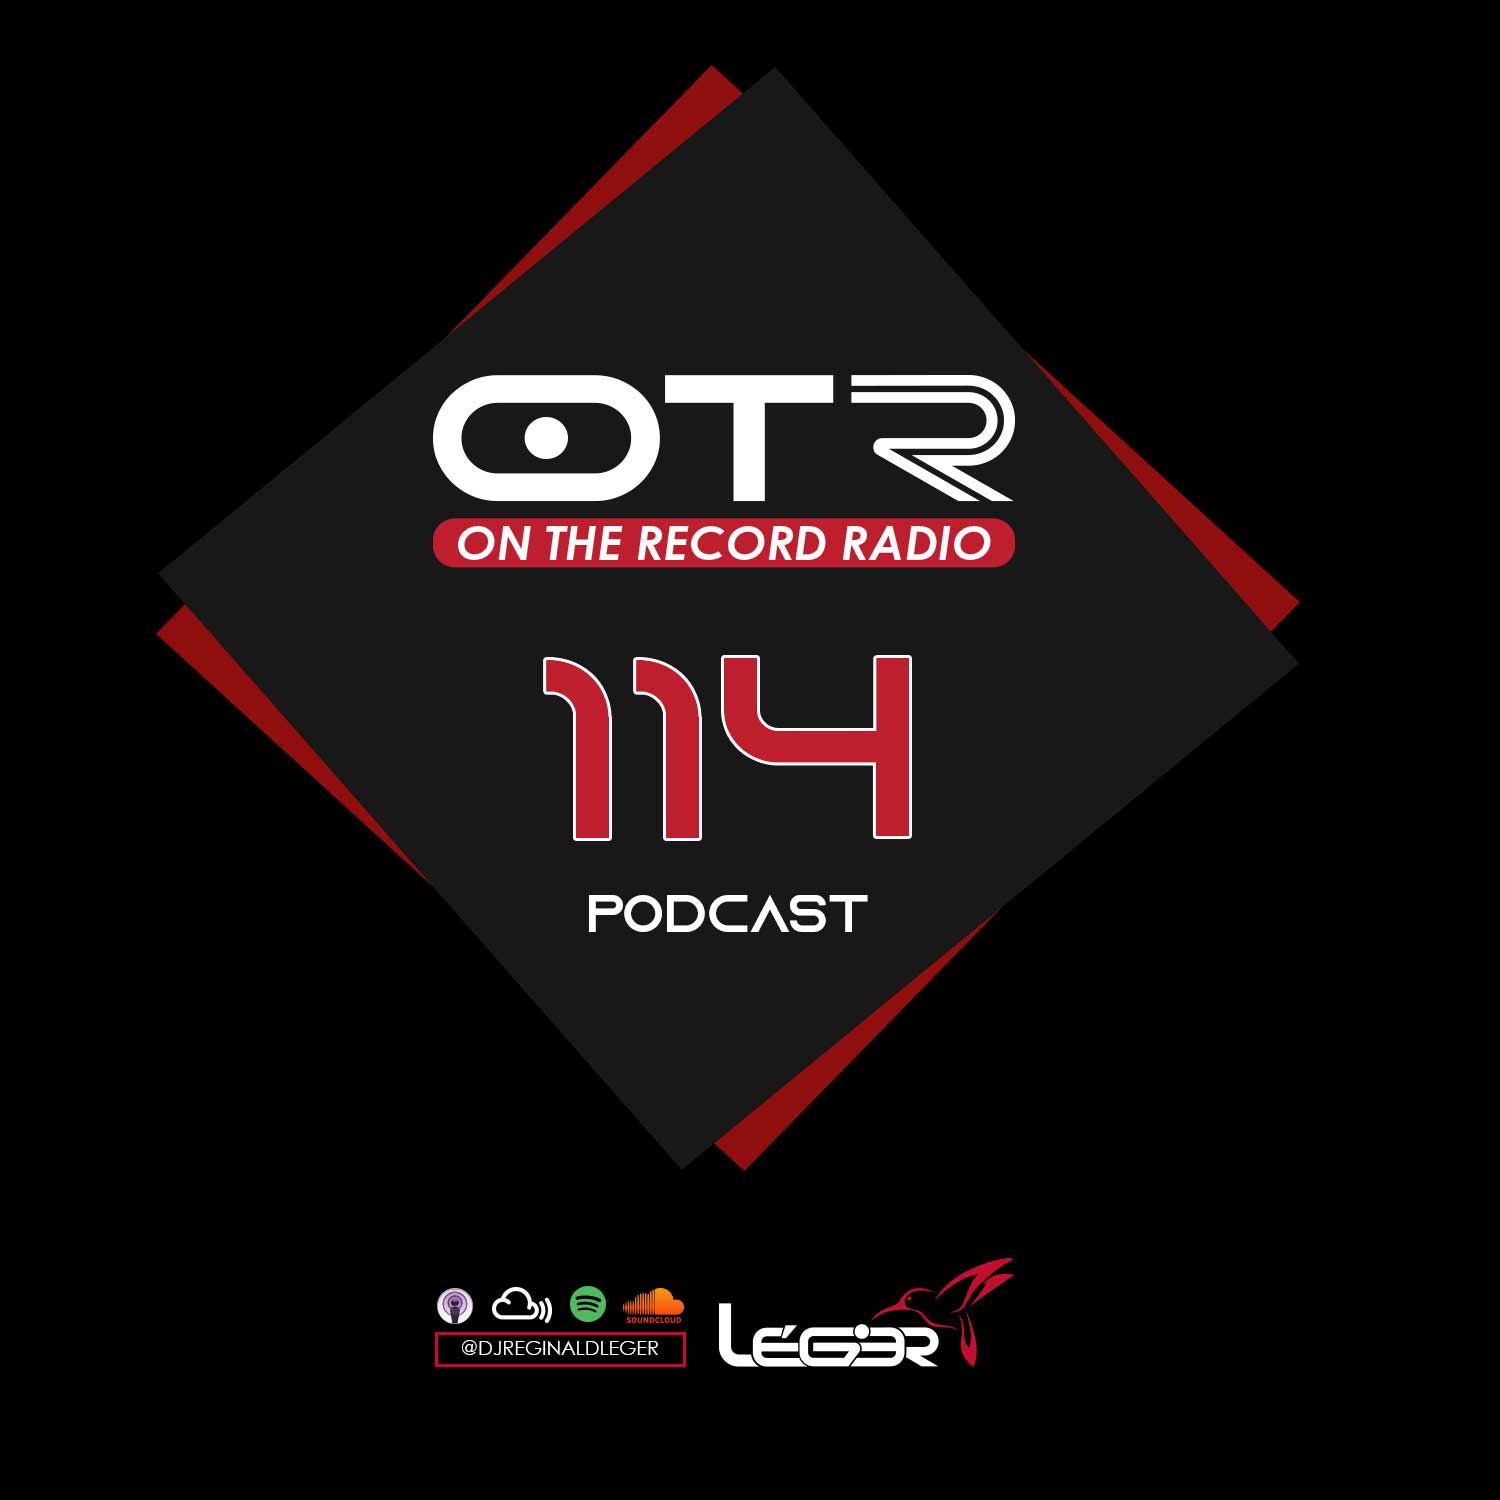 On The Record | OTR 114